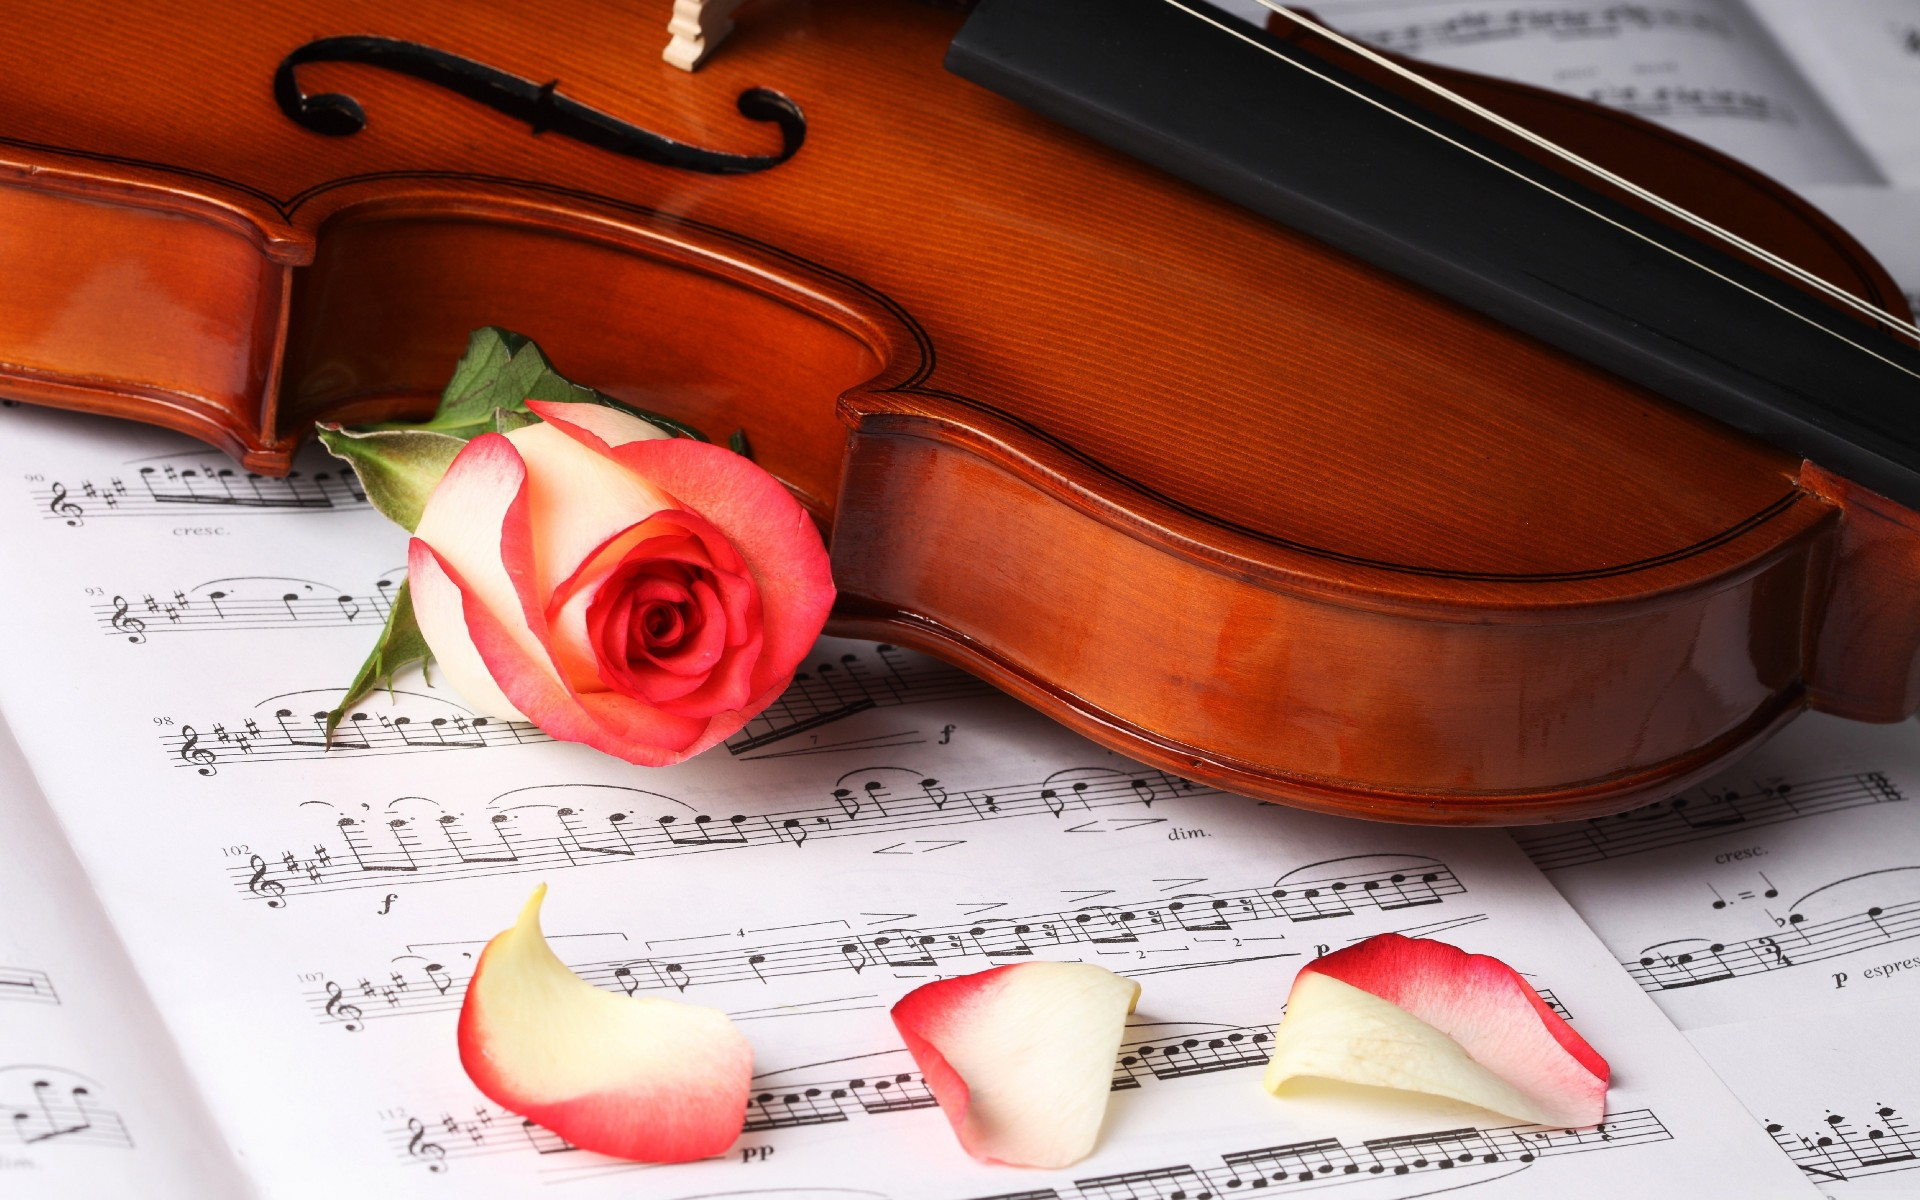 Violin on sheet music and red rose